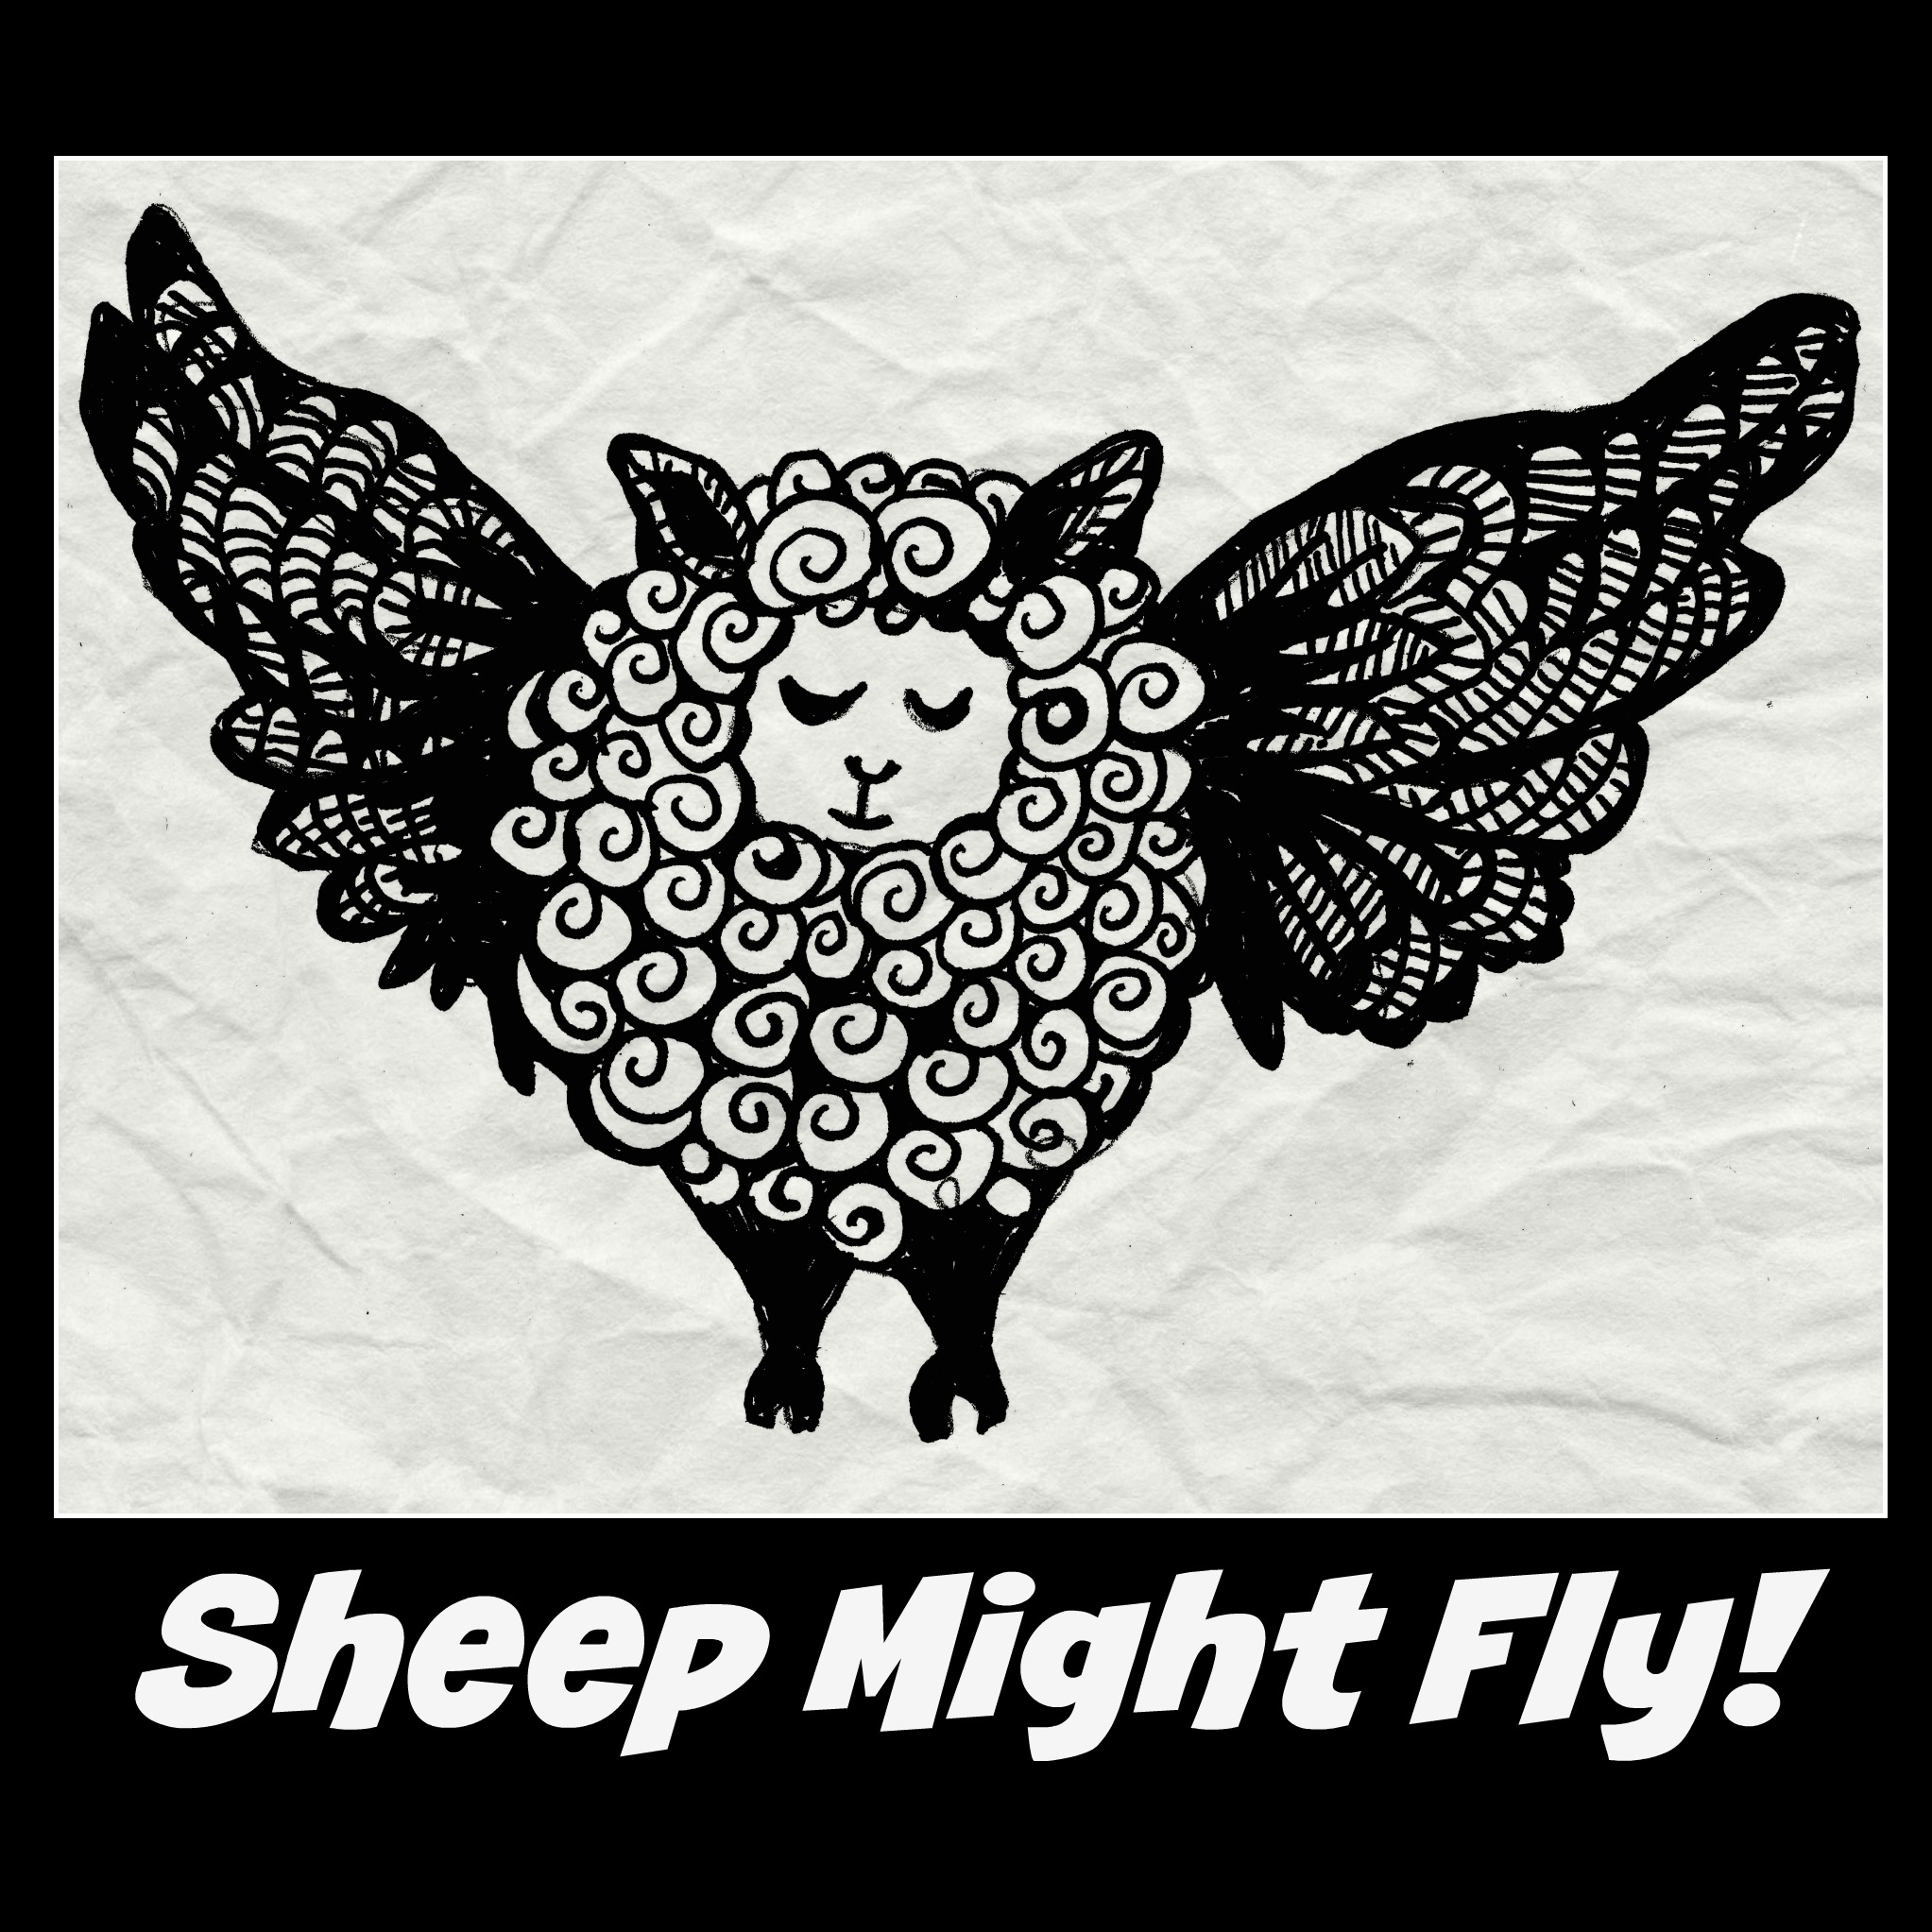 Sheep Might Fly